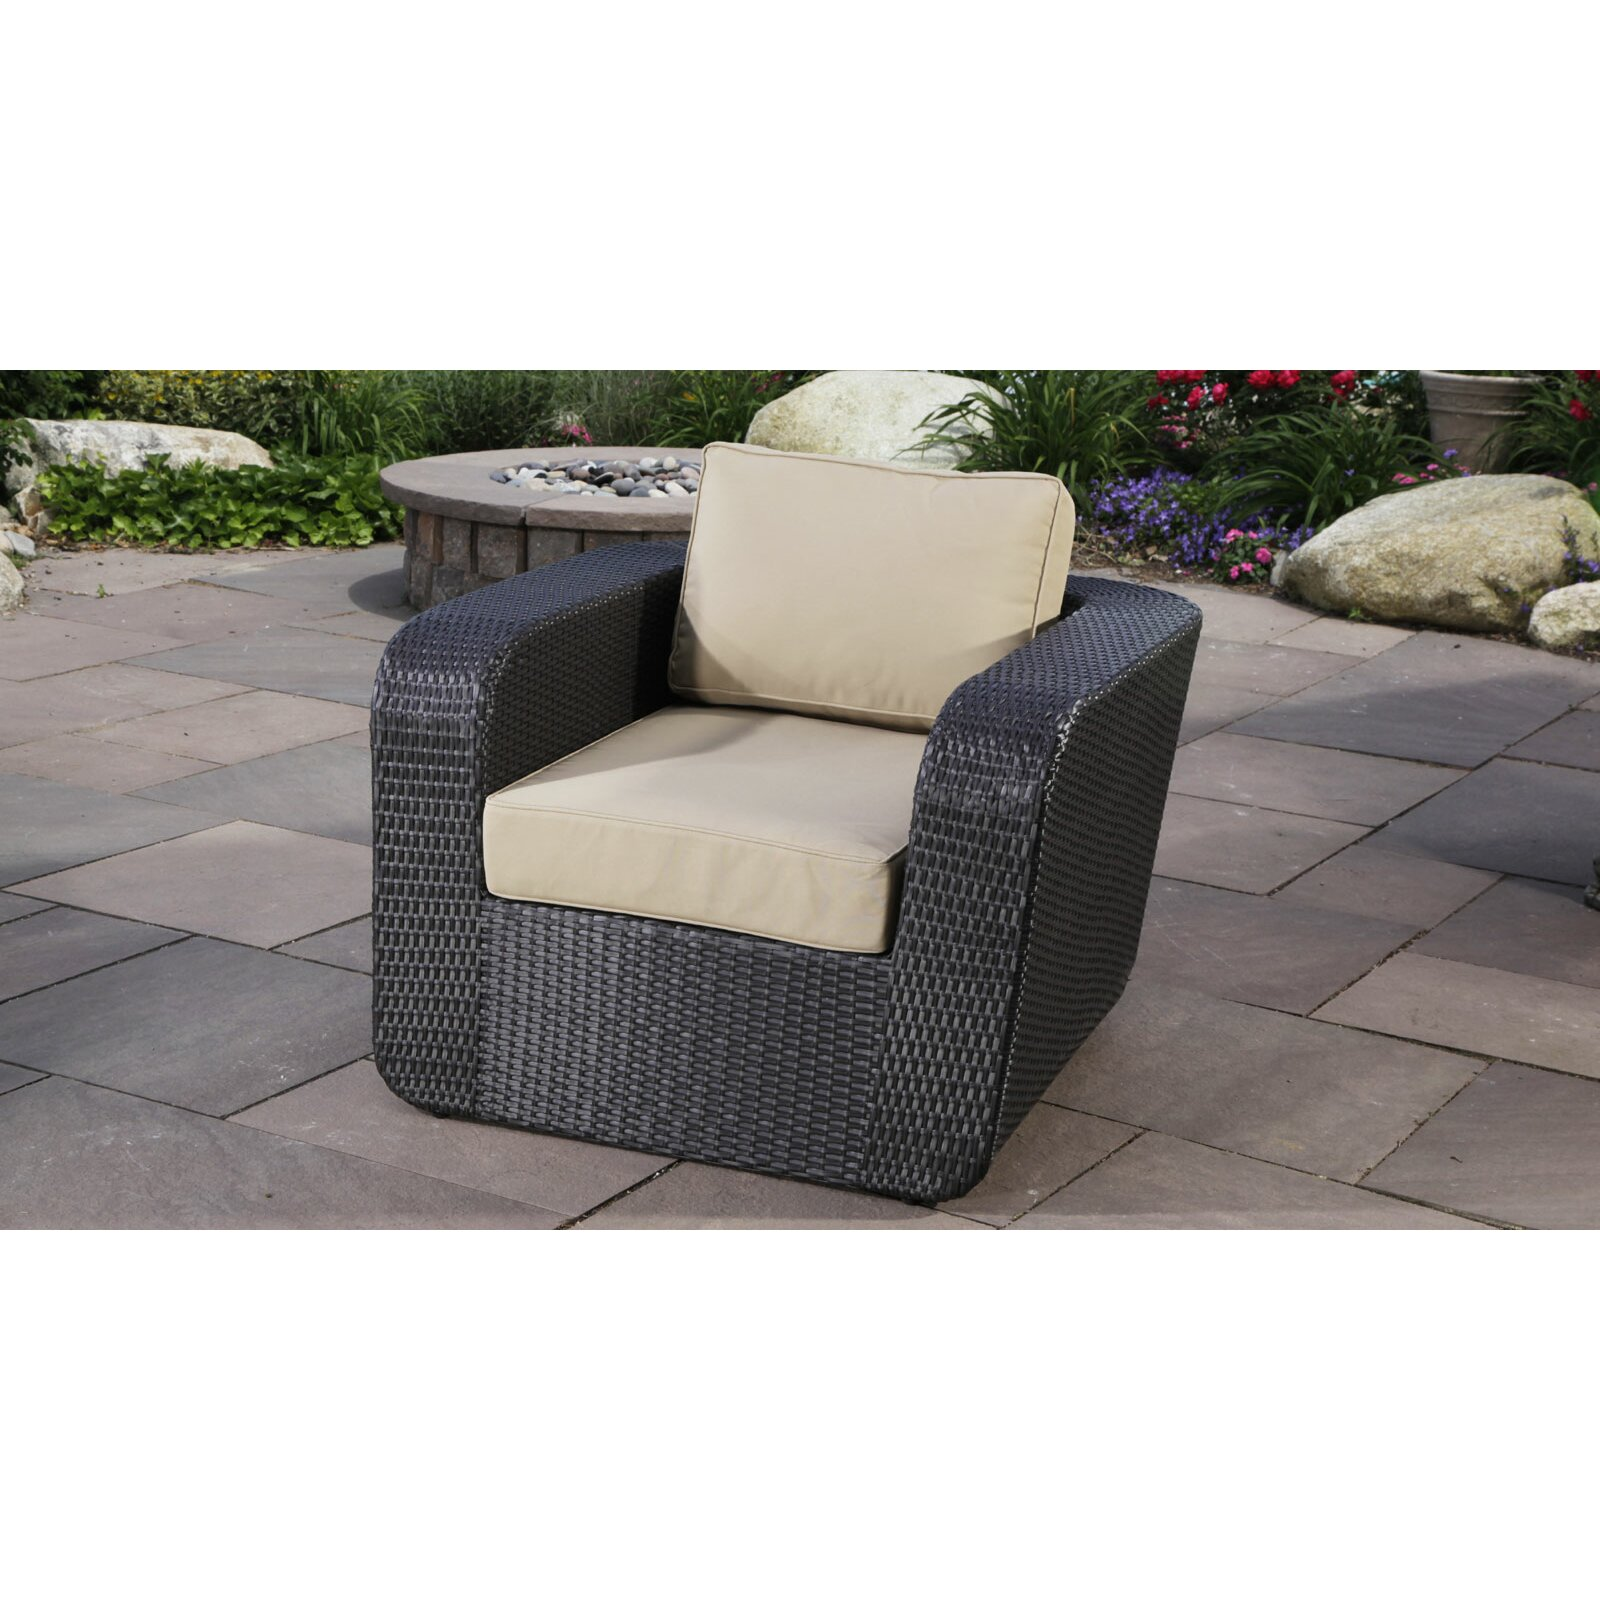 Madbury road malta club chair with cushions reviews for Outdoor furniture malta